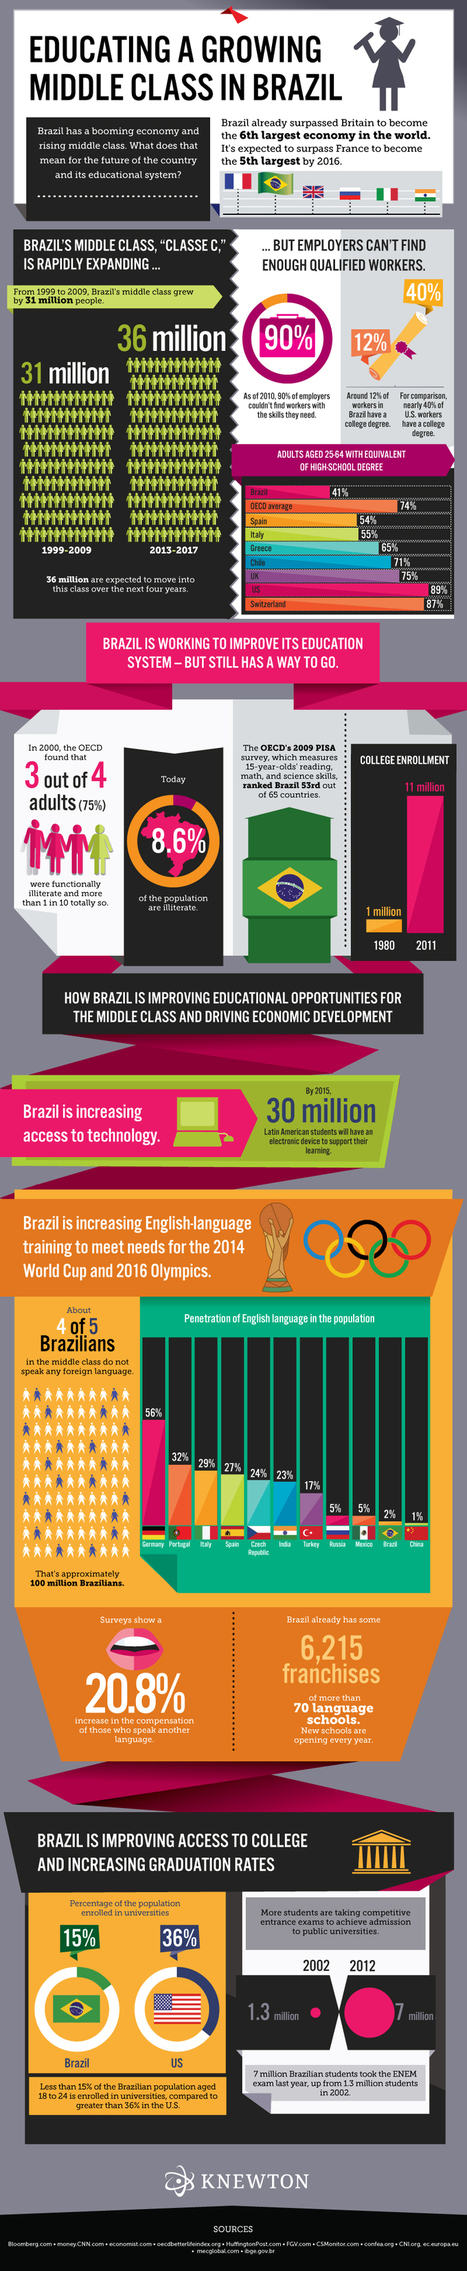 Education in Brazil & A Growing Middle Class | Gestão do Conhecimento | Scoop.it